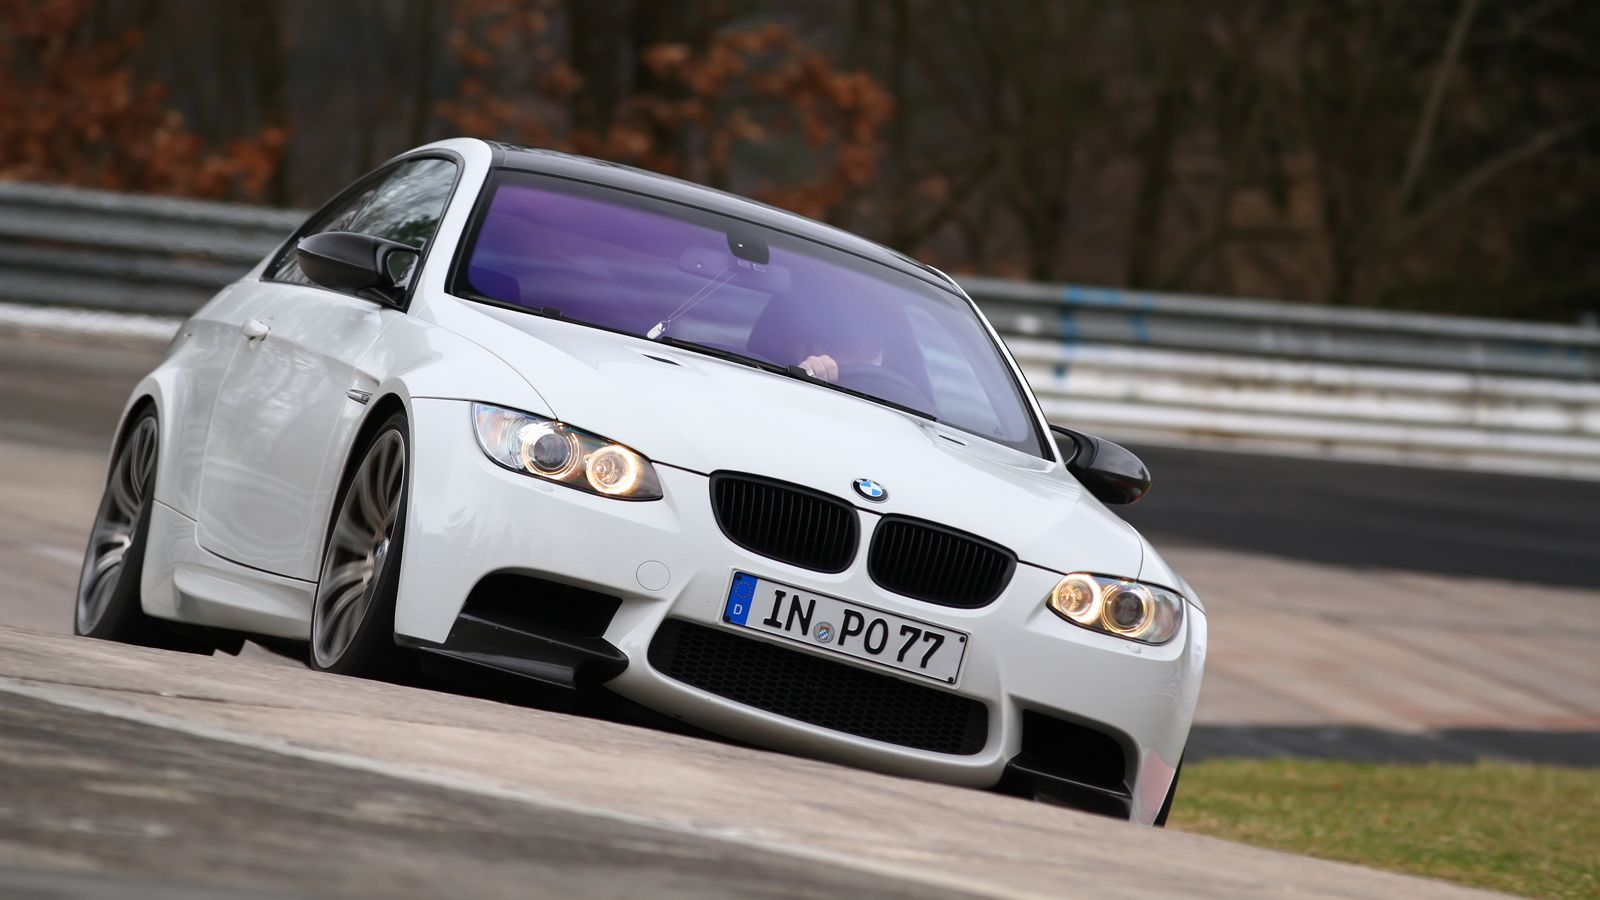 Ridiculously cool bmw m3 wallpaper is here your ridiculously cool bmw m3 wallpaper is here voltagebd Images